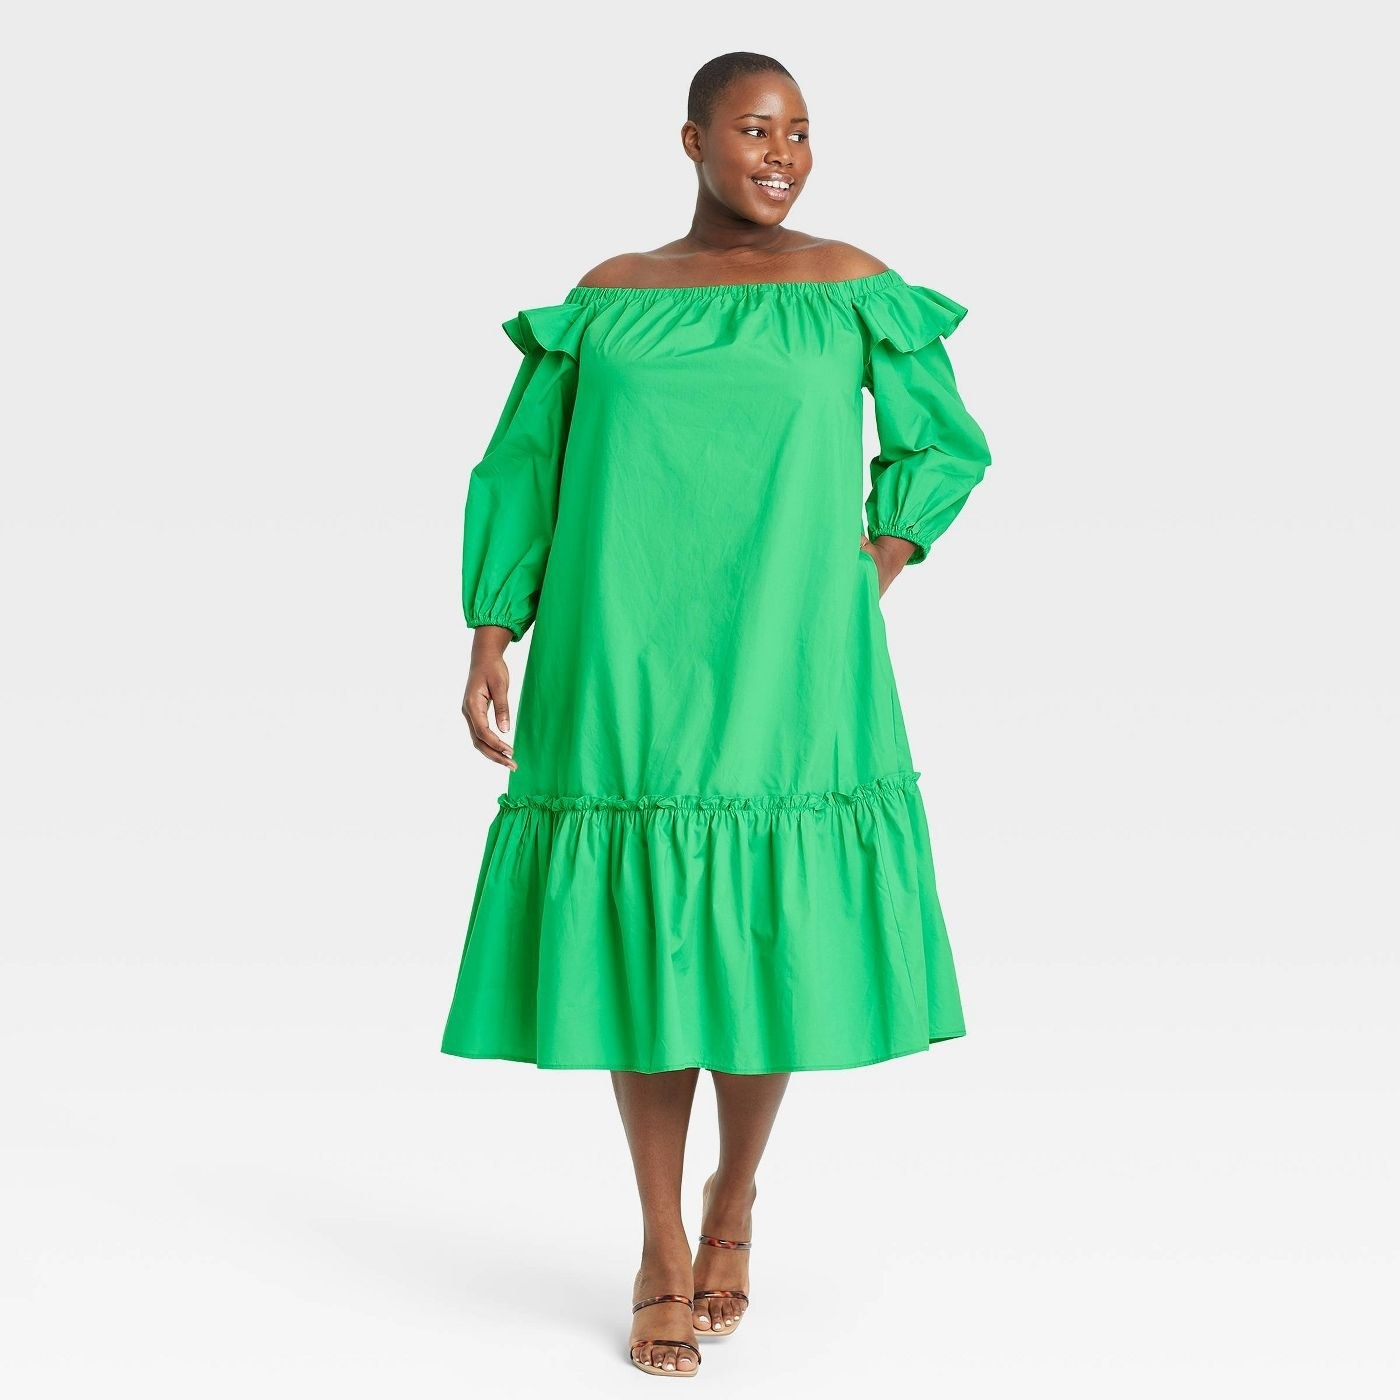 Model wearing green dress with tiered skirt, goes past the knee